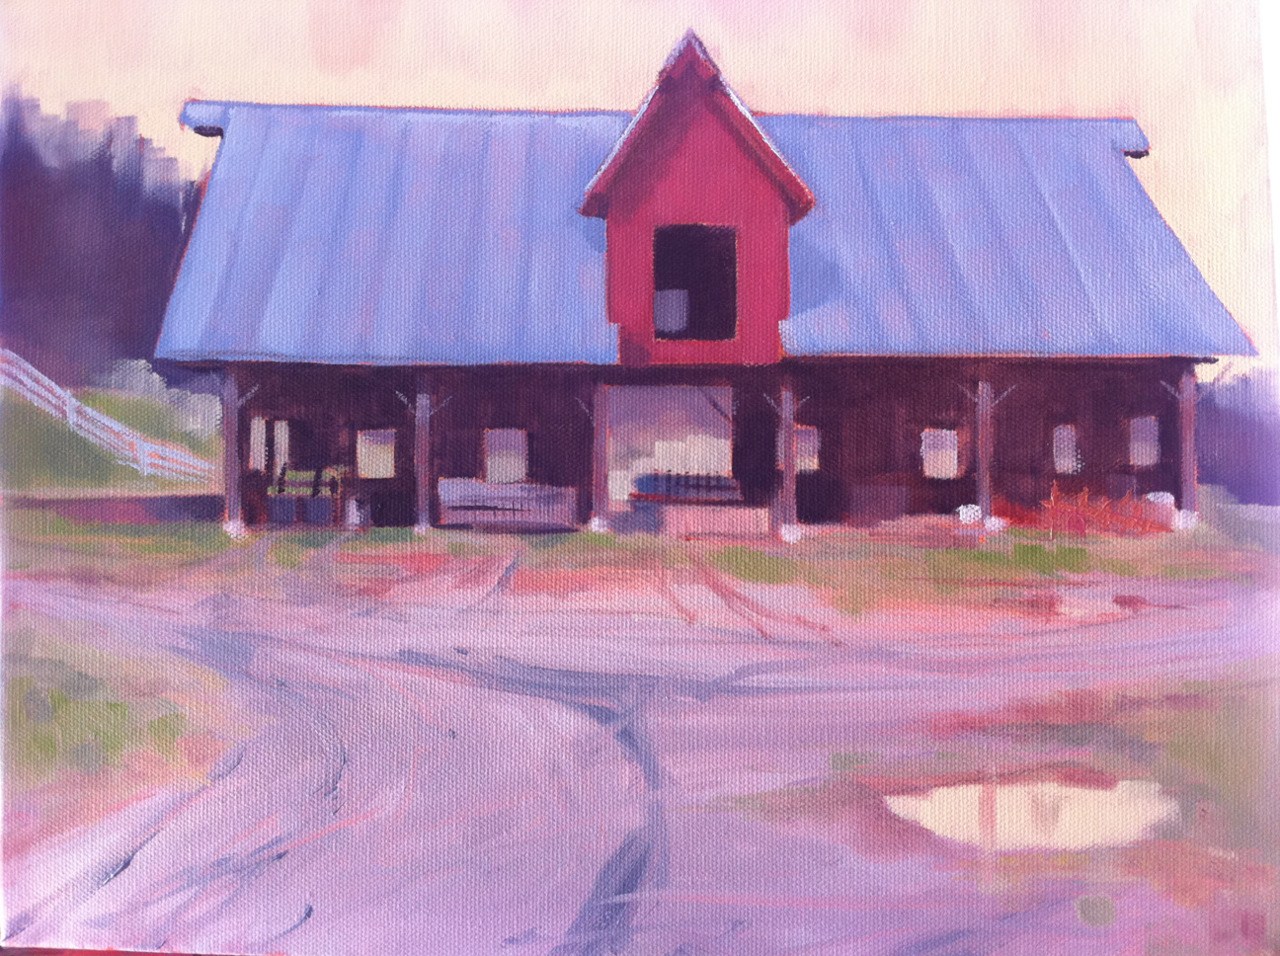 One on-going series is Vermont barns, structures and landscapes. Culled from visits to the Warhols and Slattery. This is Slattery's tractor shed. Nice shed! Open doors or open sides of these structures are a lot like the markets in Europe that I've painted. There is a suspended volume of shadow in the composition that grounds it, and if there is a window to the light of the landscape beyond then the space of the overall composition is extended that much more.